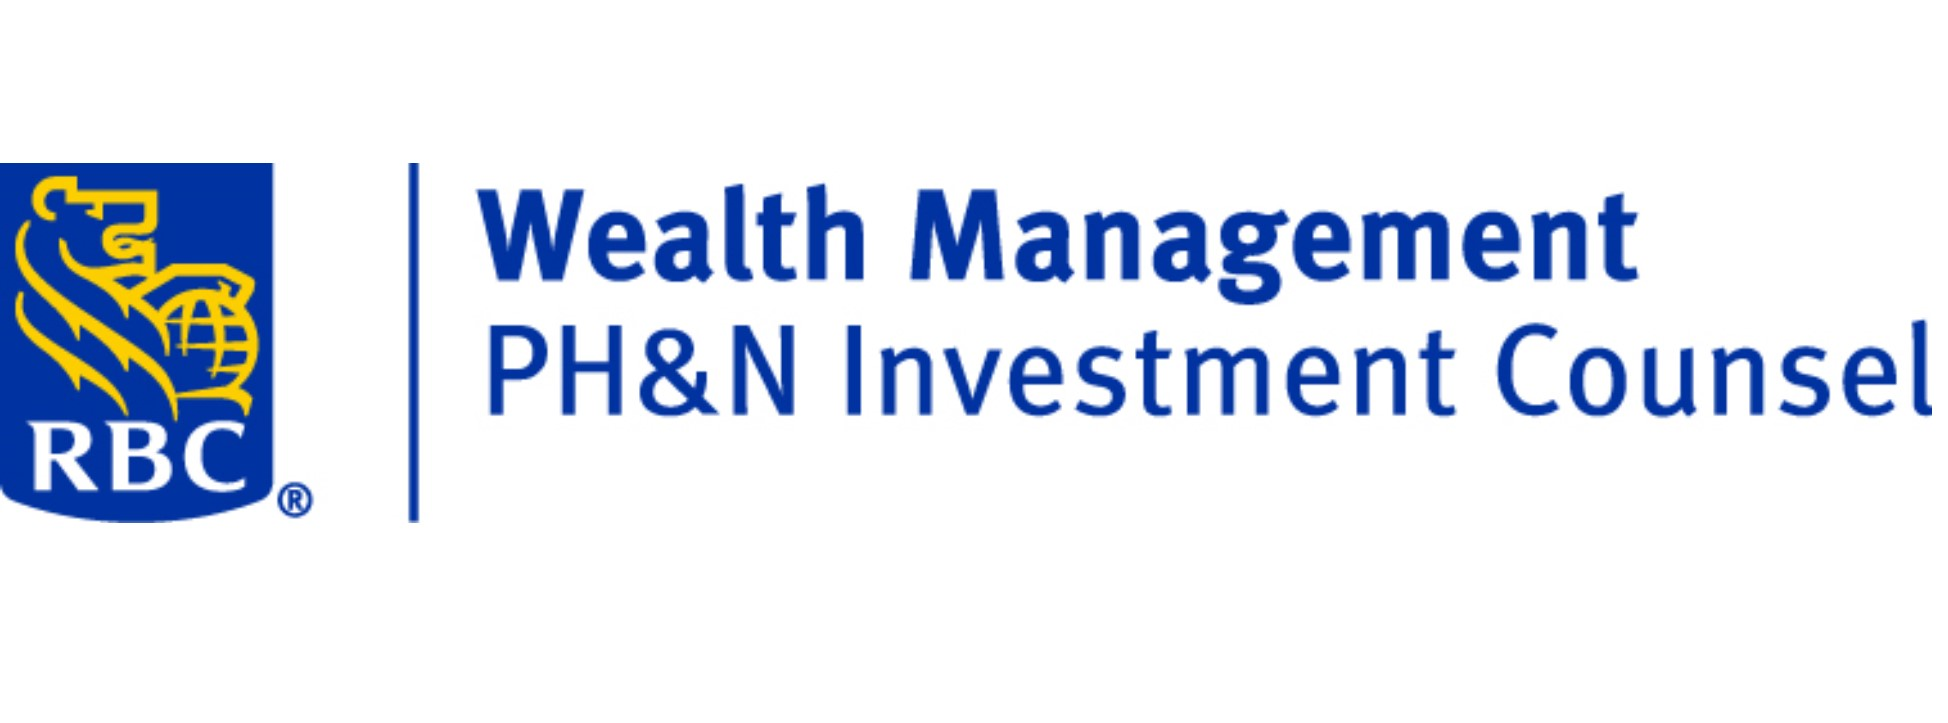 SS-RBC Wealth Management